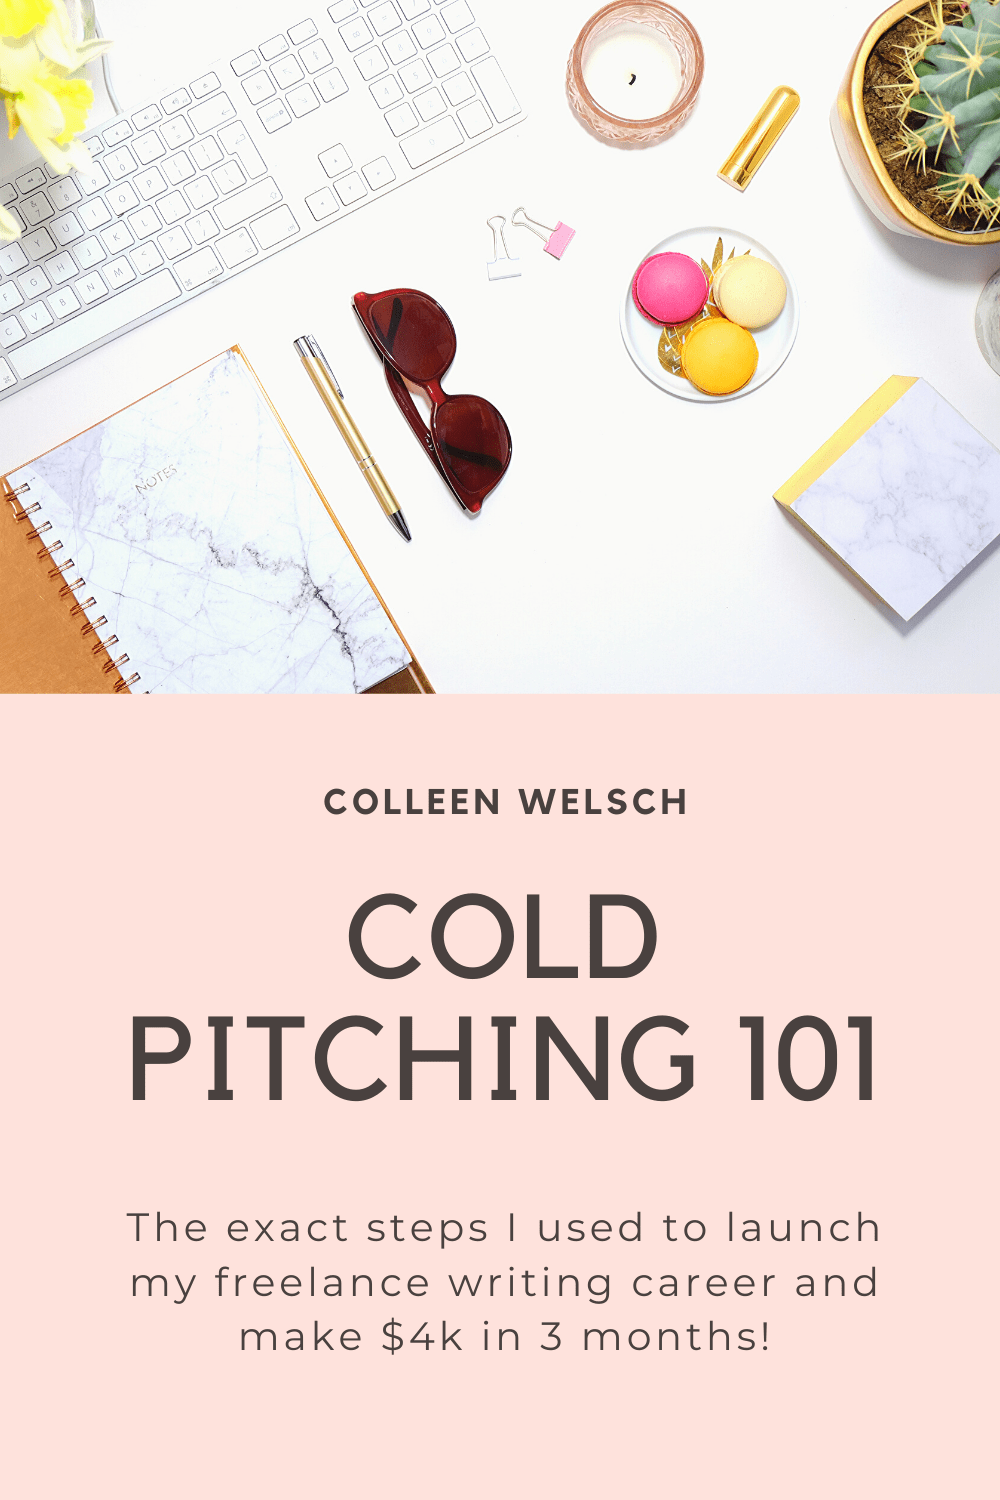 Cold Pitching 101 For Freelance Writers Free Templates Freelance Writing Freelance Writer 10 Things